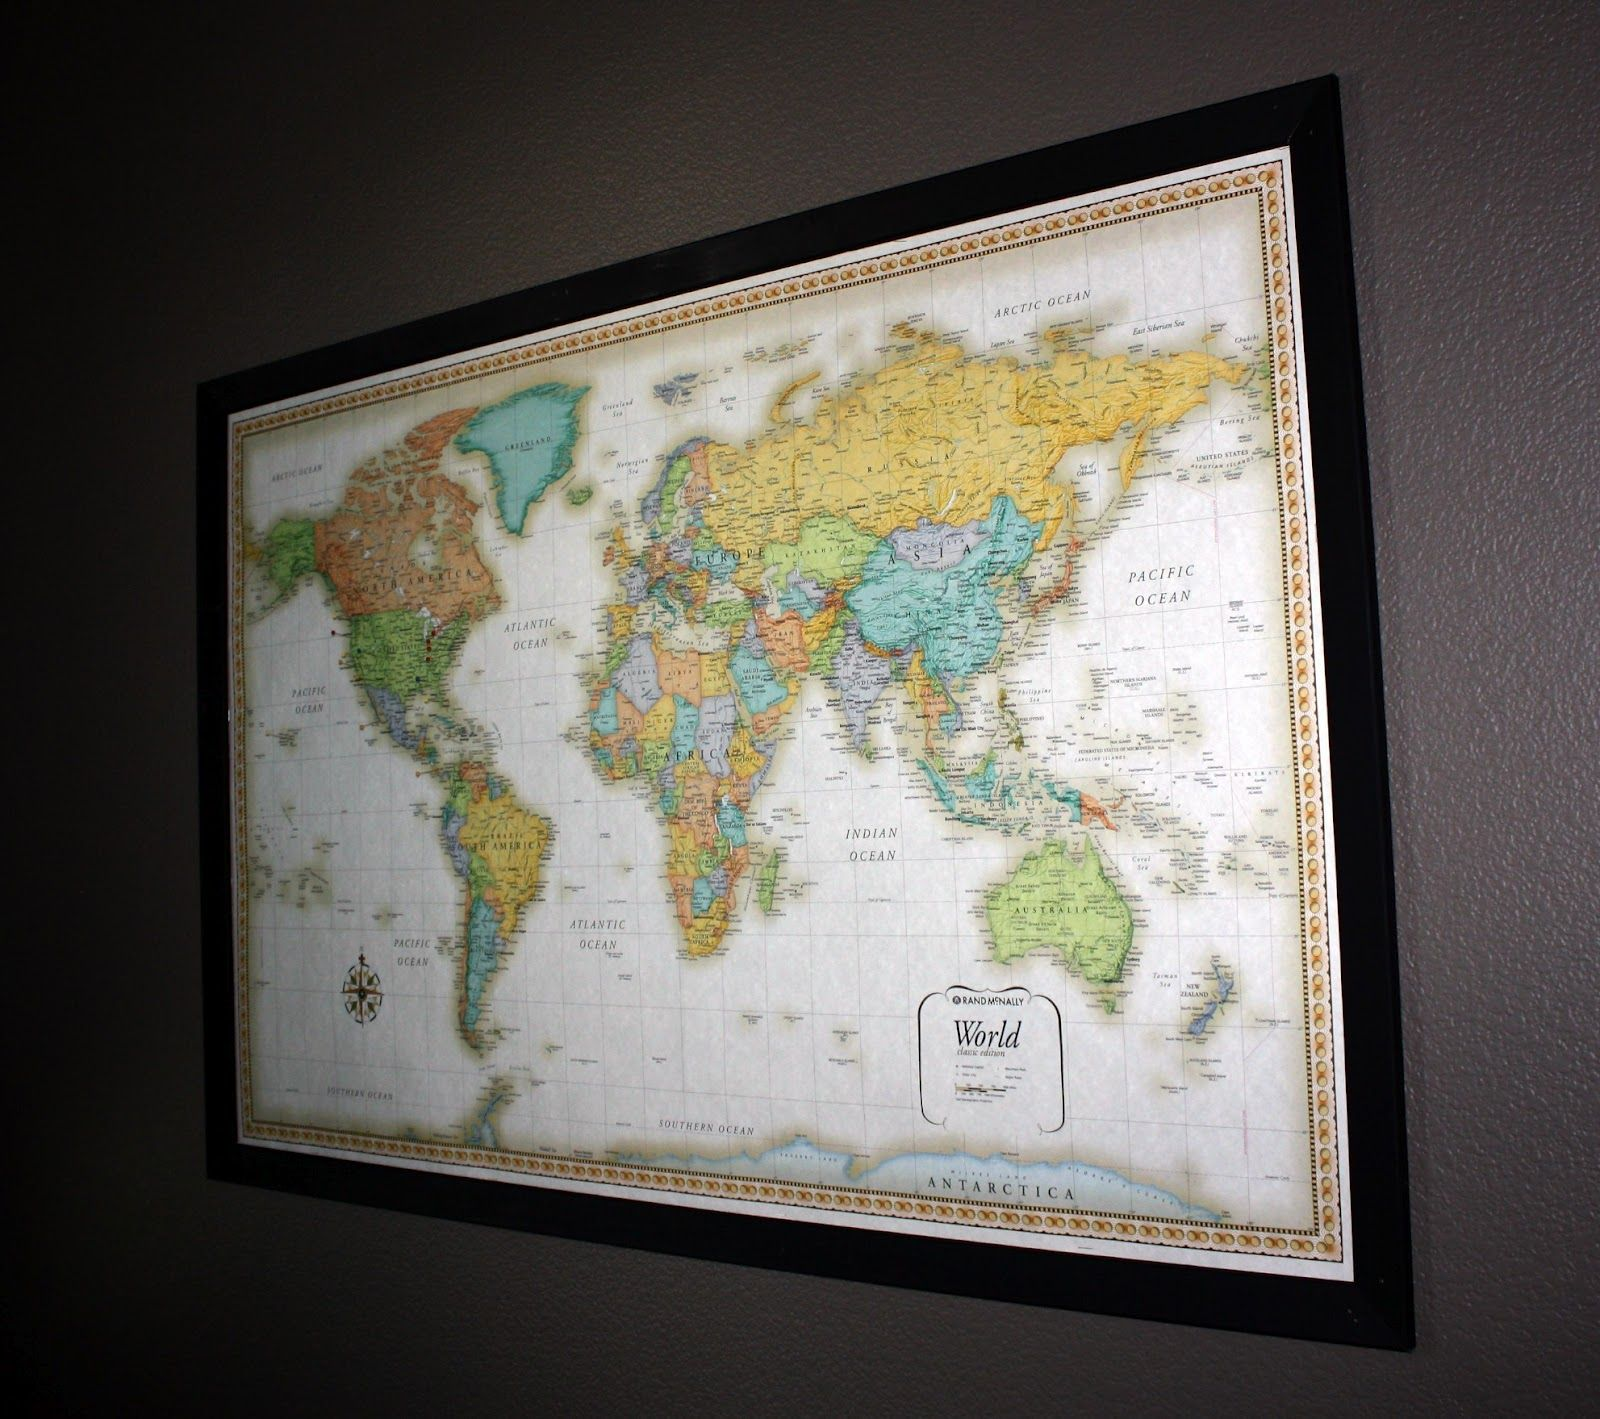 here 39 s another one dark frame around colored world map dwell diy frame framed maps map art. Black Bedroom Furniture Sets. Home Design Ideas